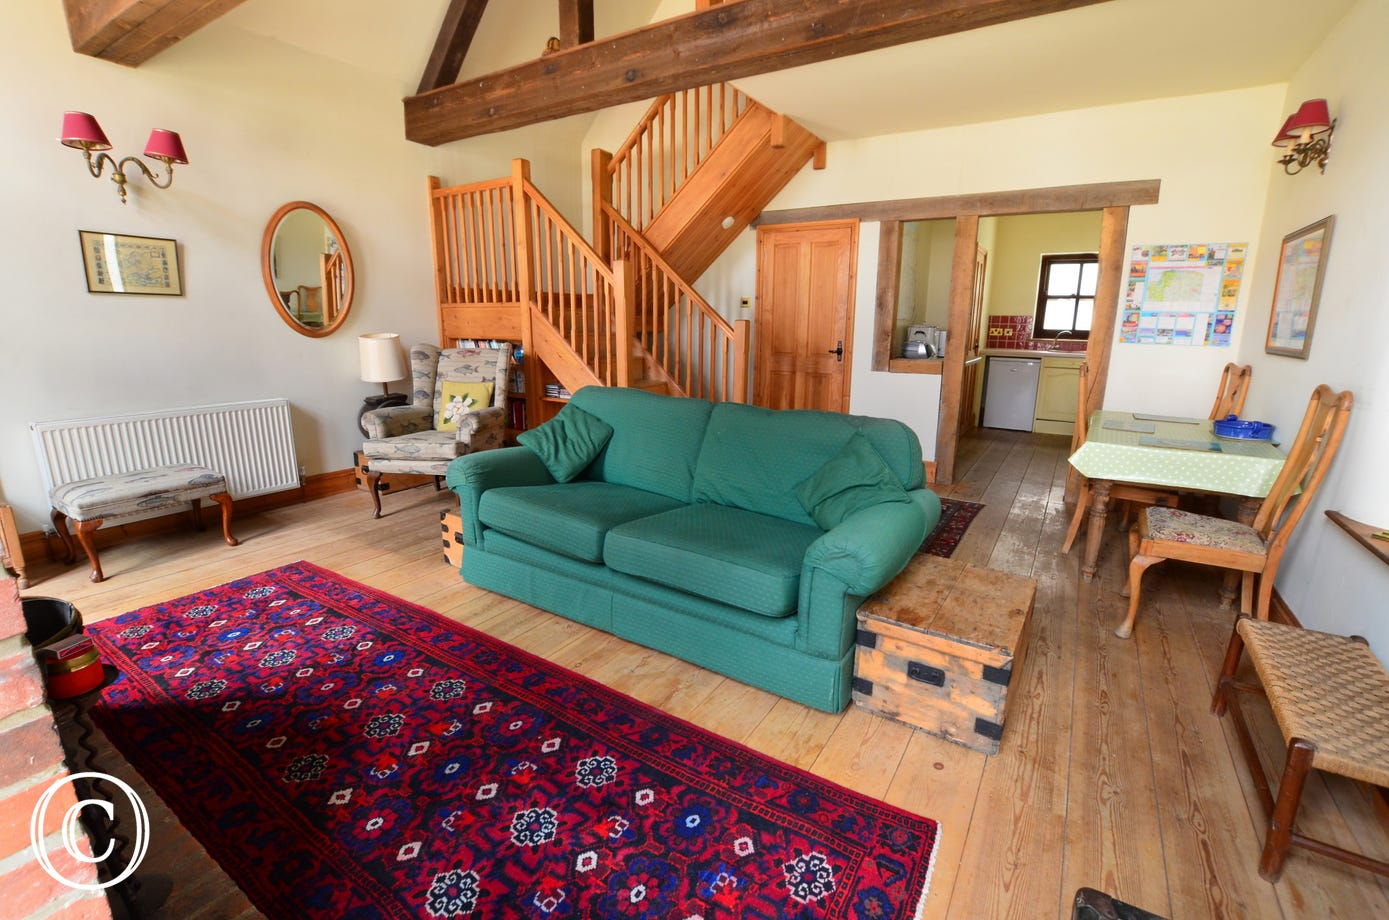 A pleasantly furnished, spacious sitting room with a vaulted ceiling and exposed beams